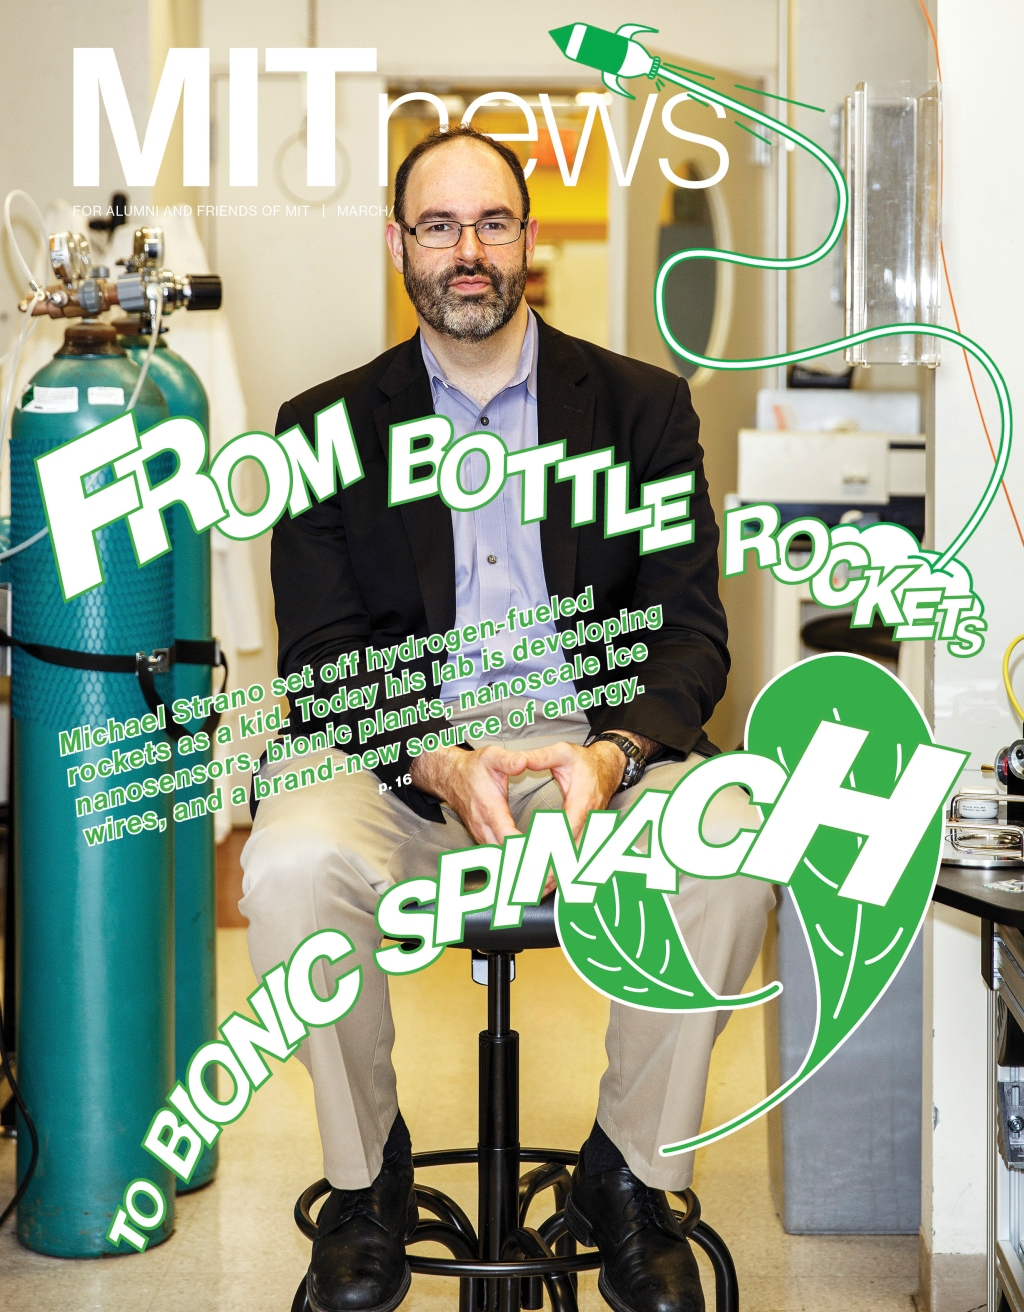 From Bottle Rockets to Bionic Spinach